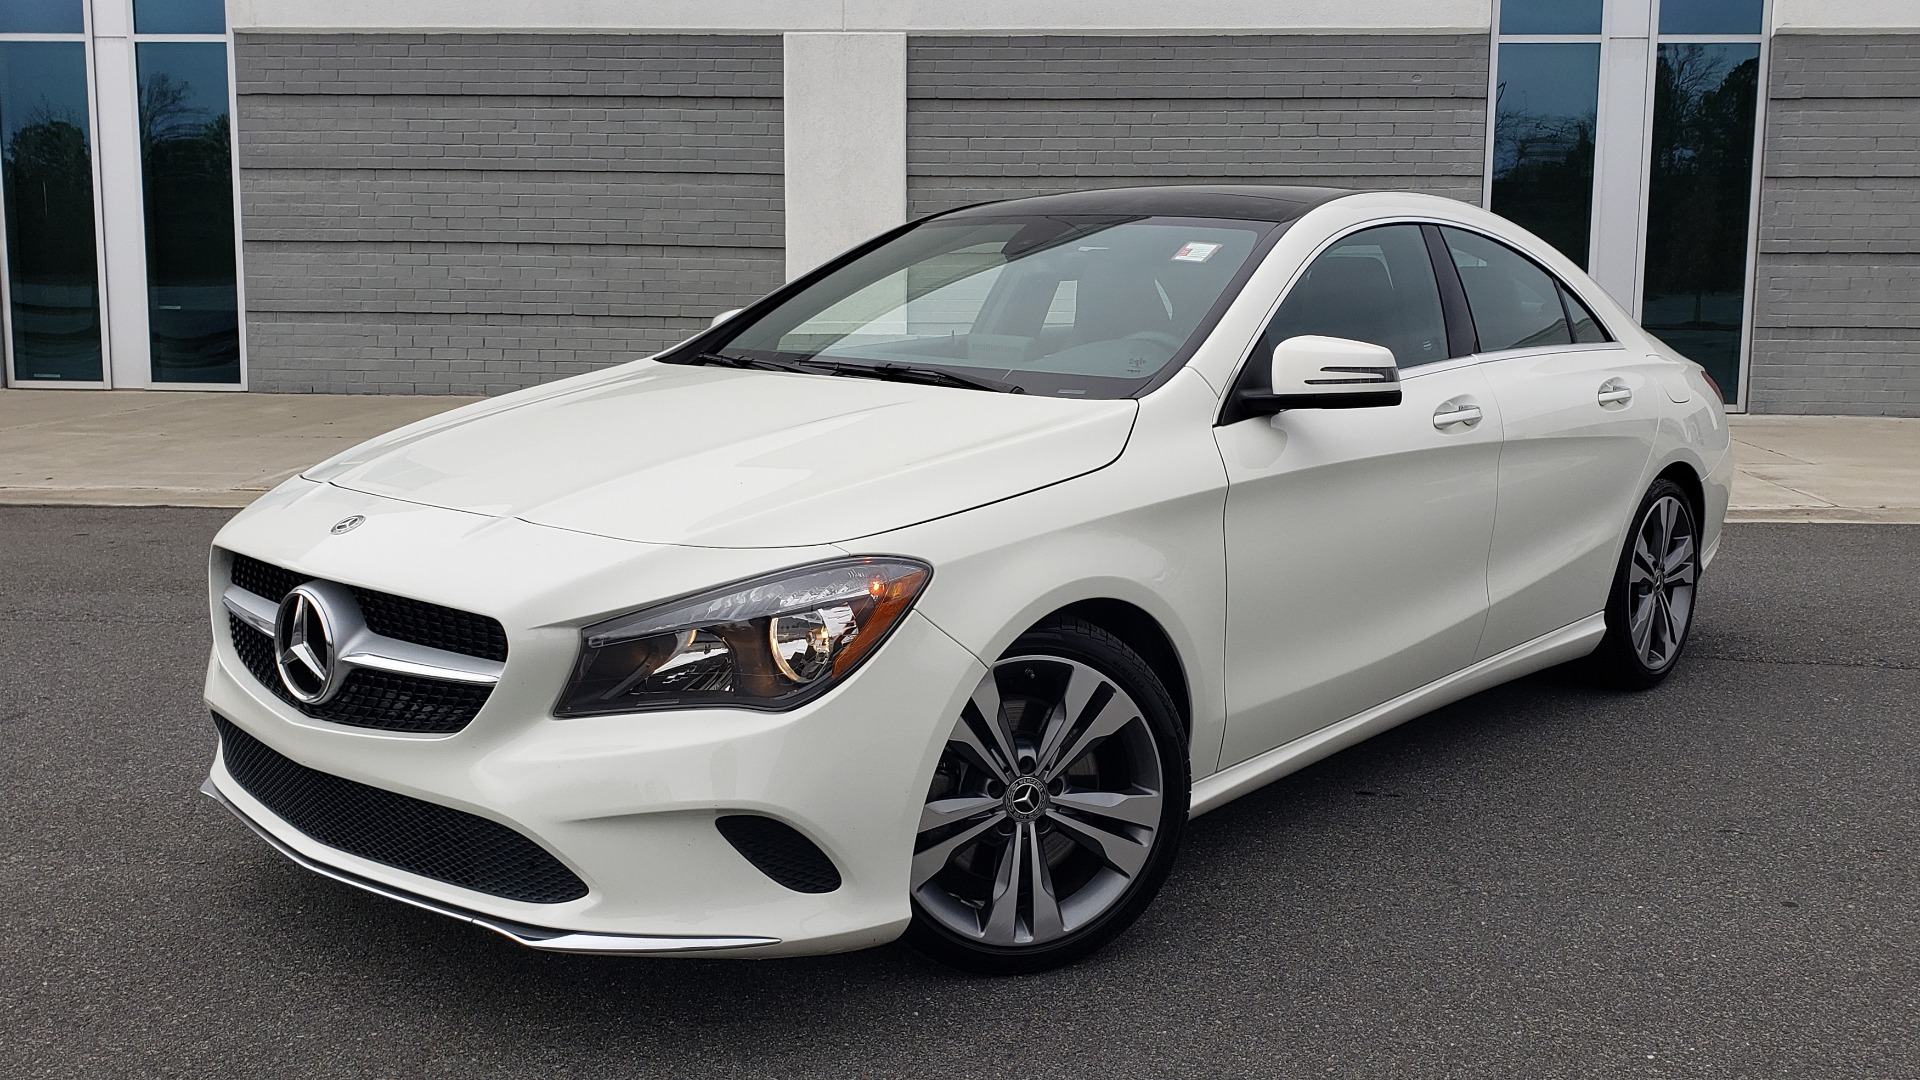 Used 2018 Mercedes-Benz CLA 250 PREMIUM / NAV / PANO-ROOF / APPLE CARPLAY / REARVIEW for sale $23,995 at Formula Imports in Charlotte NC 28227 1